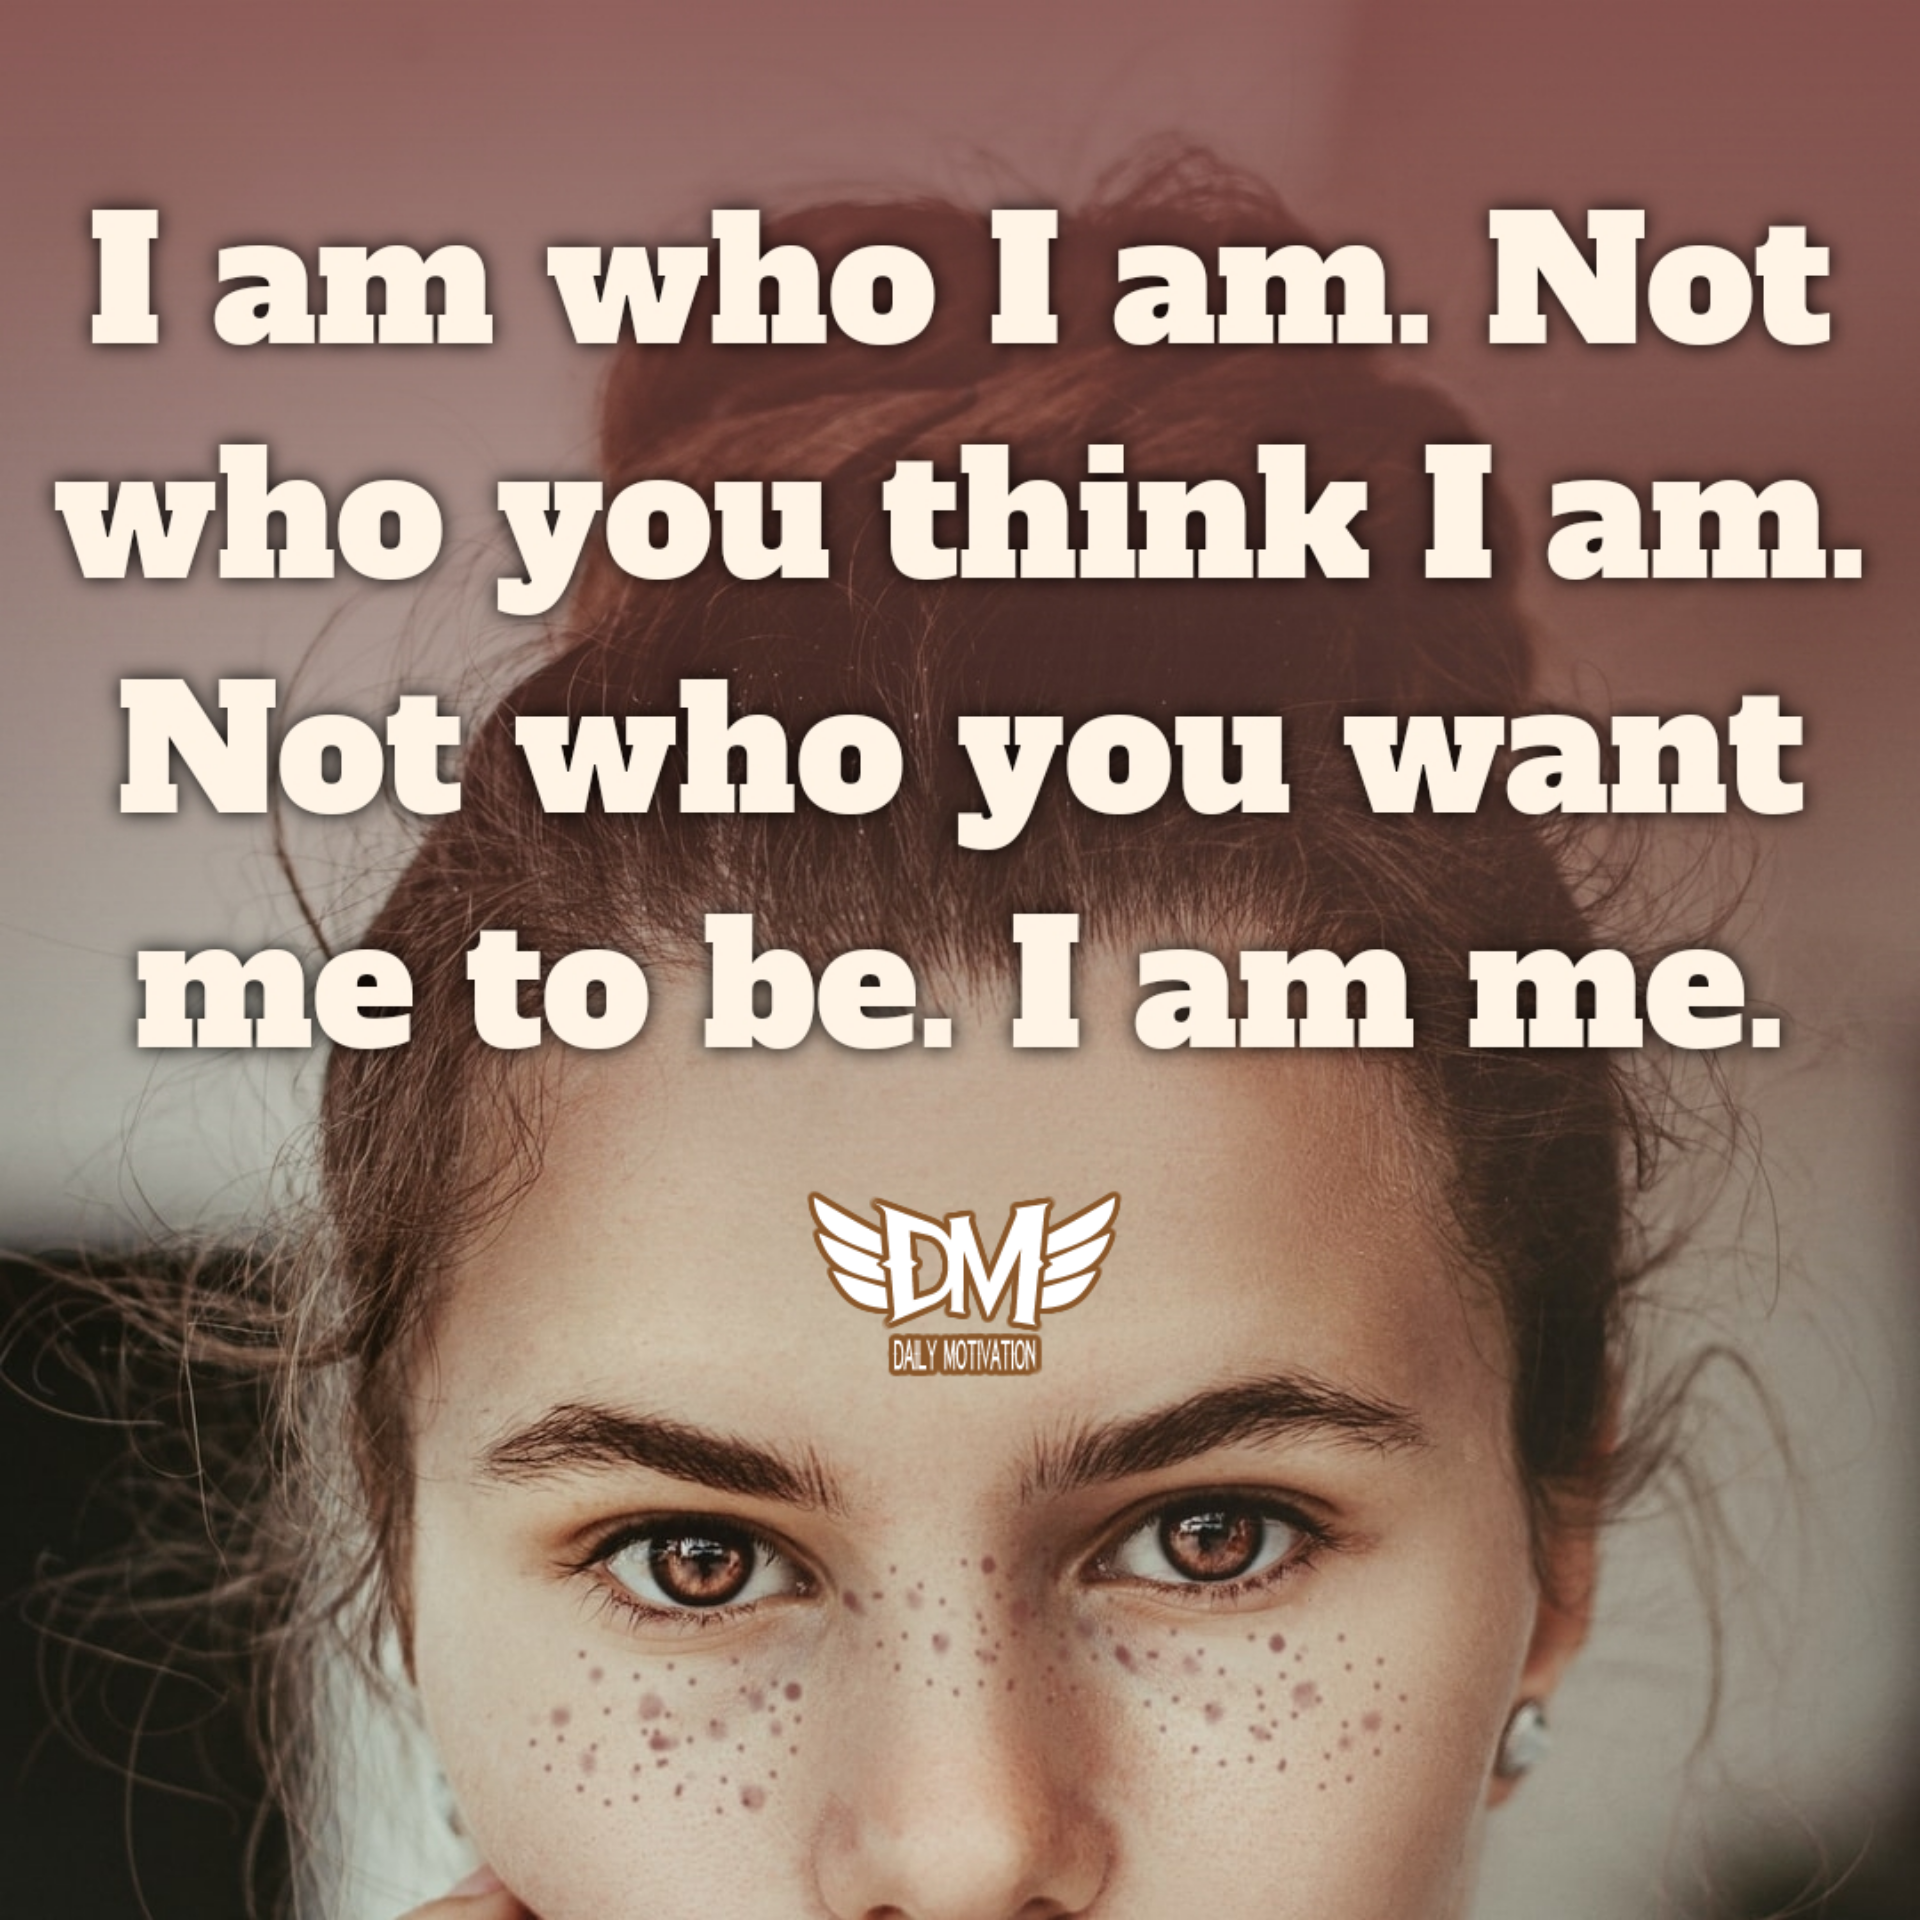 """I am who I am. Not who you think I am. Not who you want me to be. I am me."" – Brigitte Nicole [1920 x 1920]"